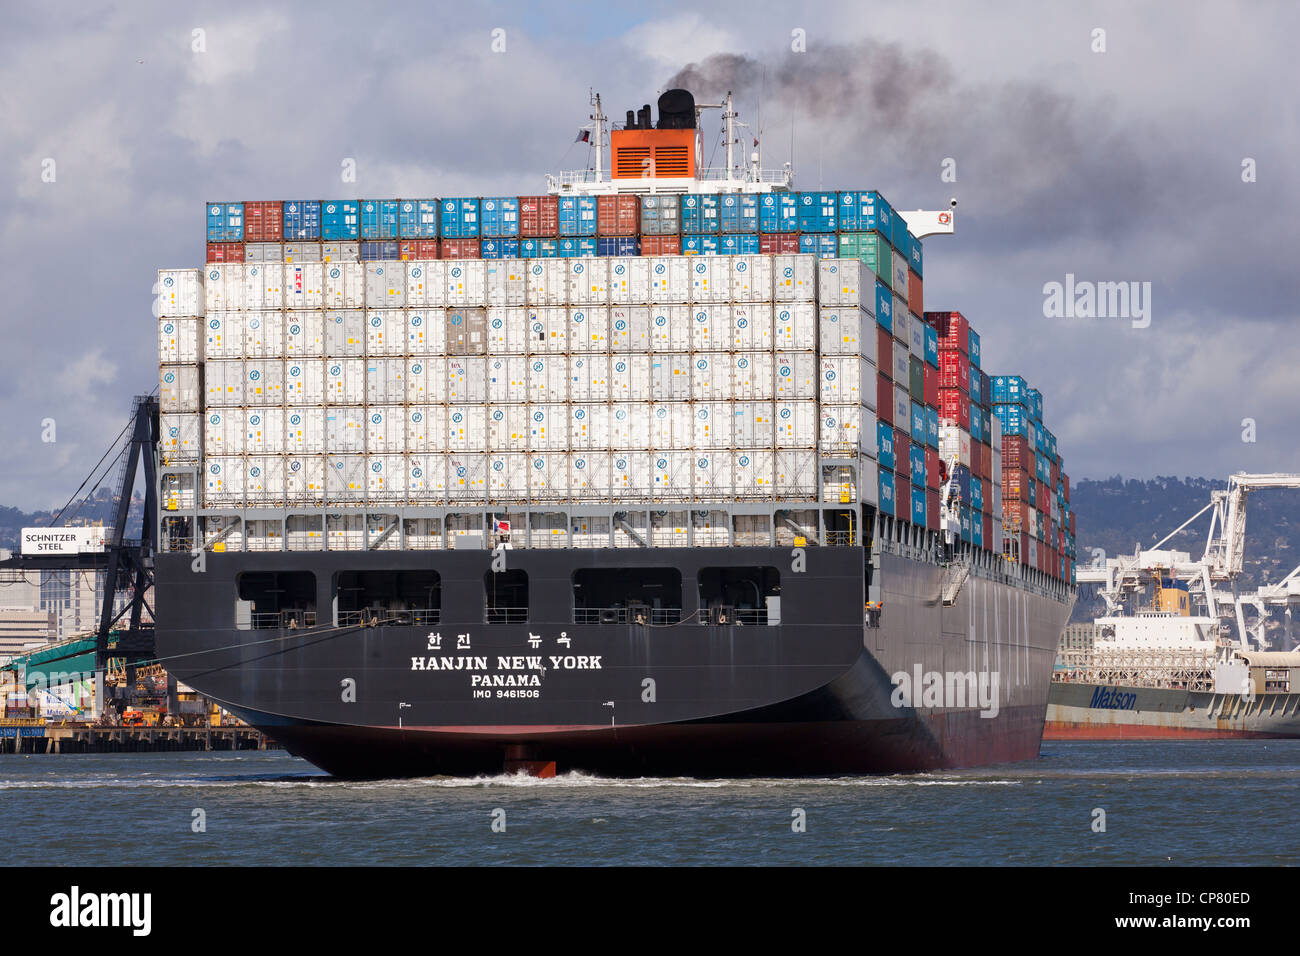 The stern side of a Hanjin cargo ship showing stacked containers at port - San Francisco, California USA - Stock Image